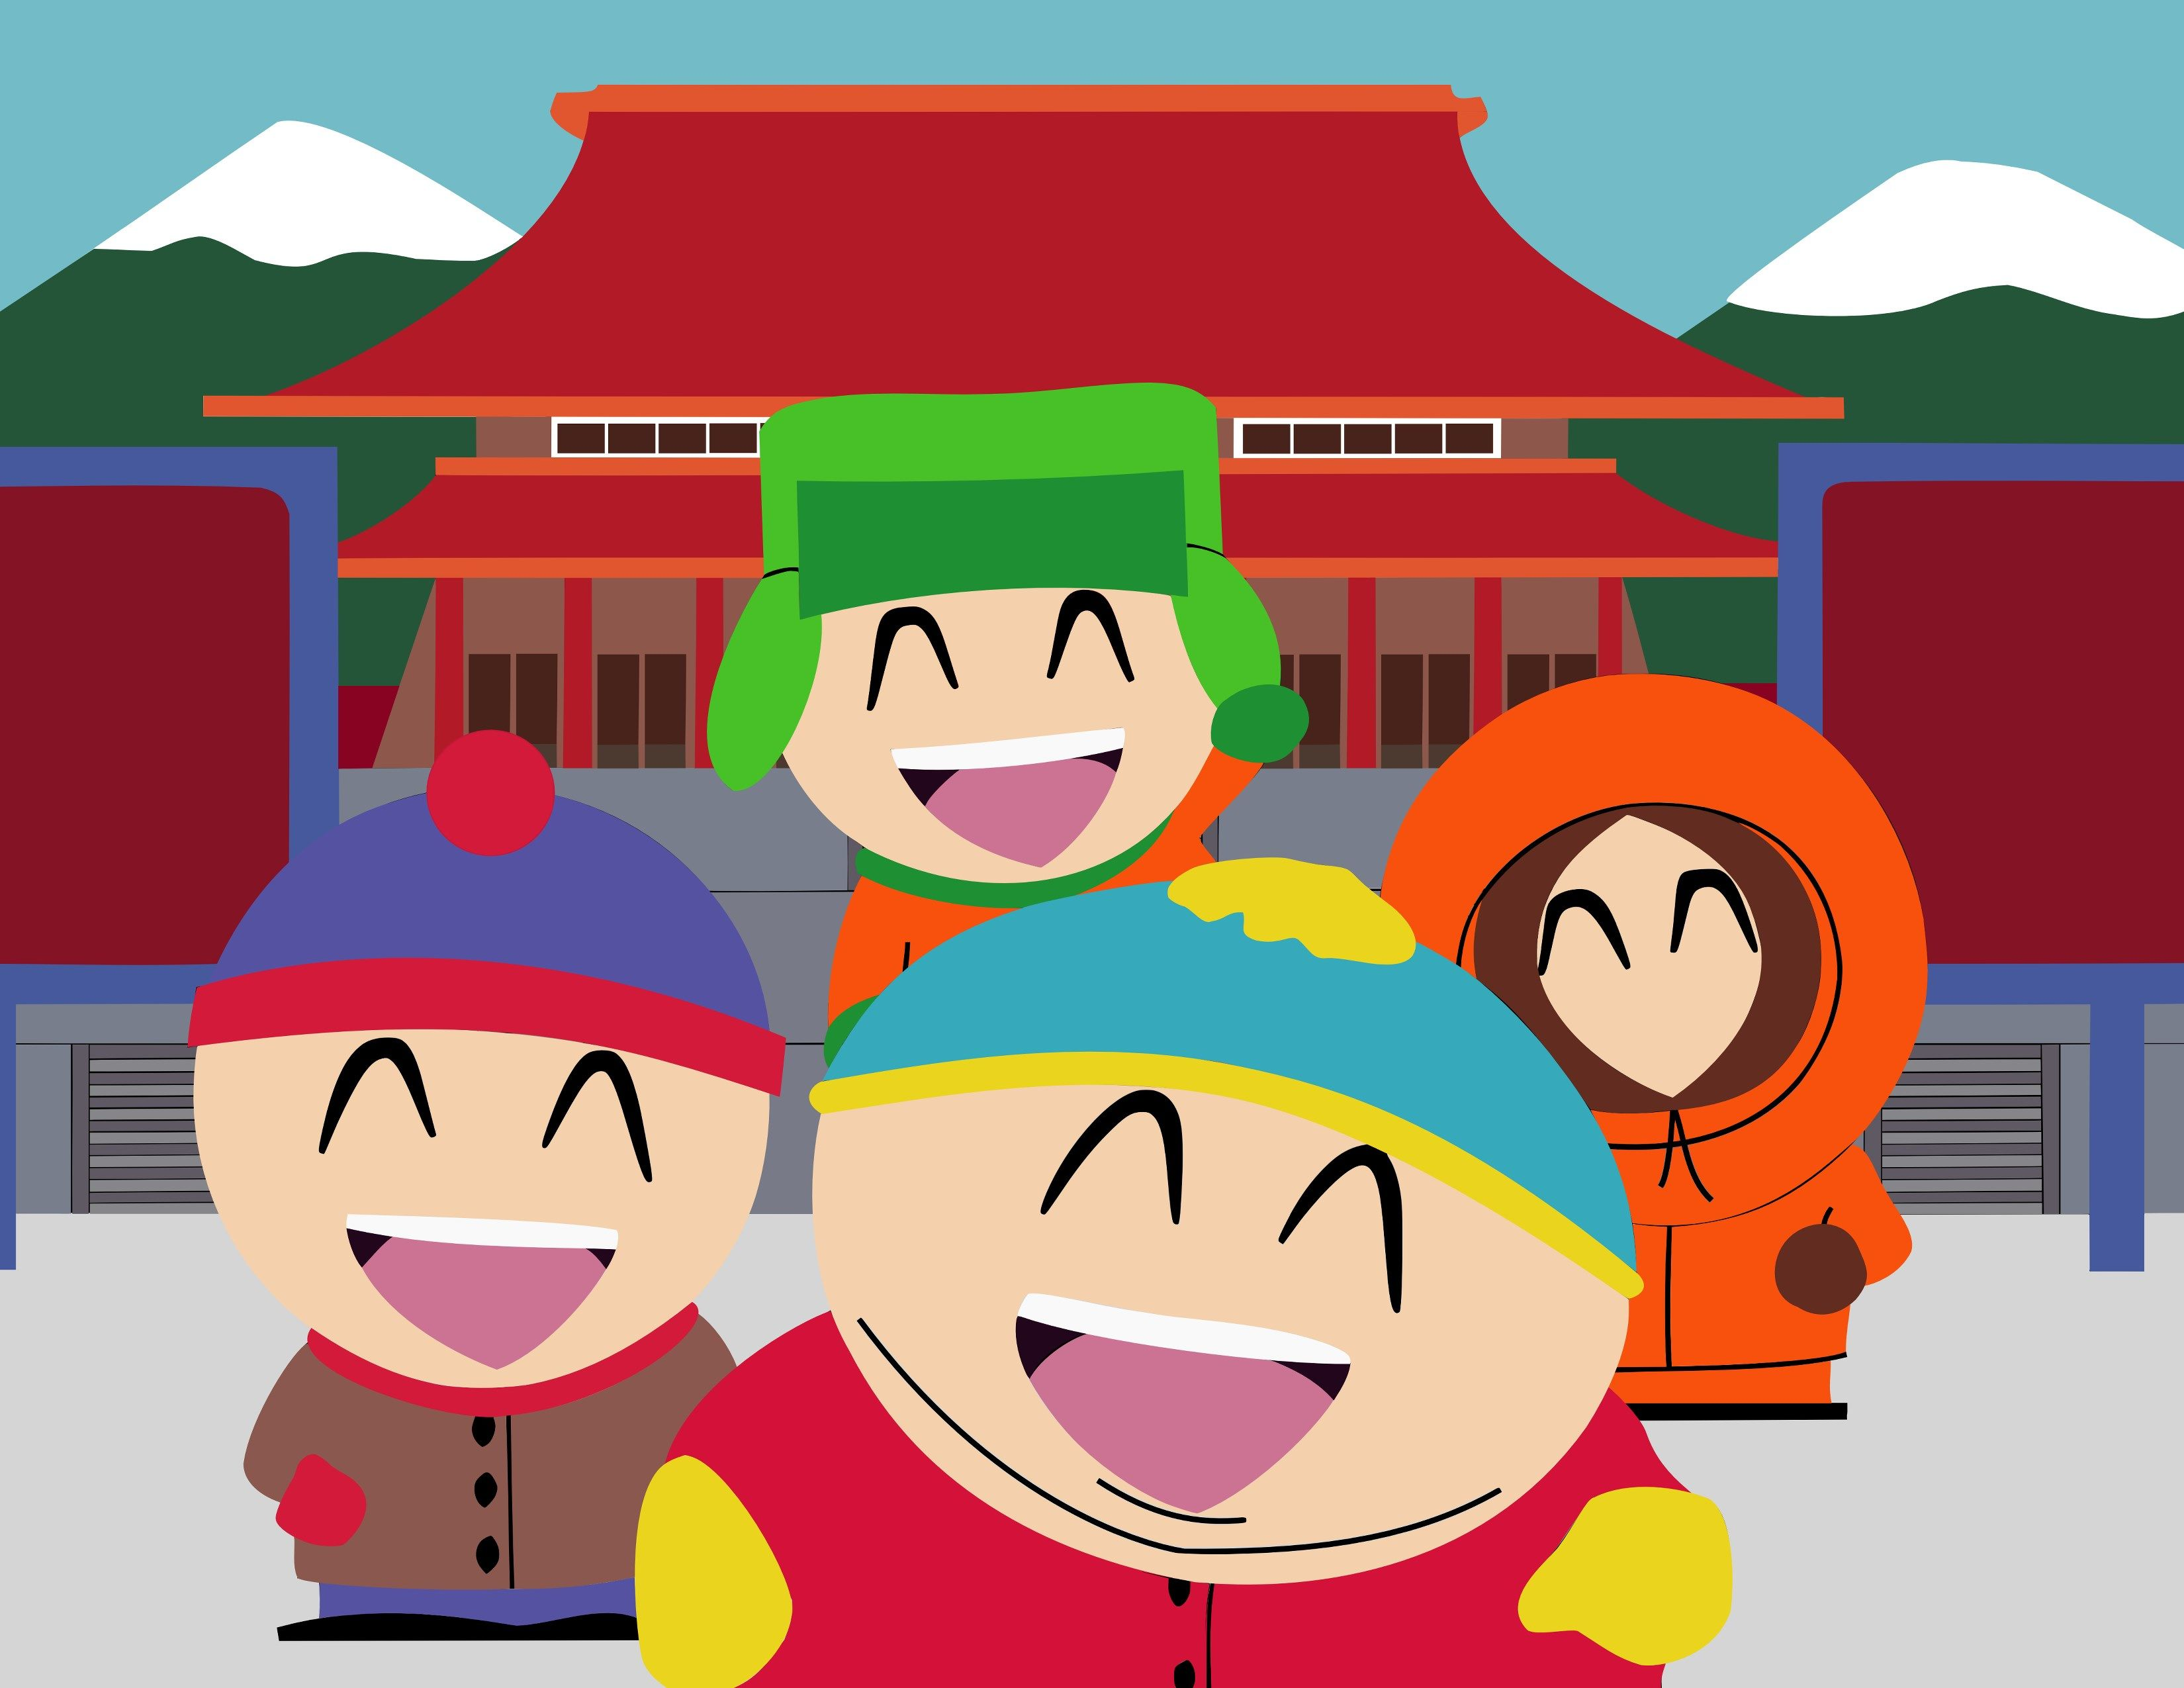 3300x2550 Px South Park Wallpaper For Mac By Zola Fairy